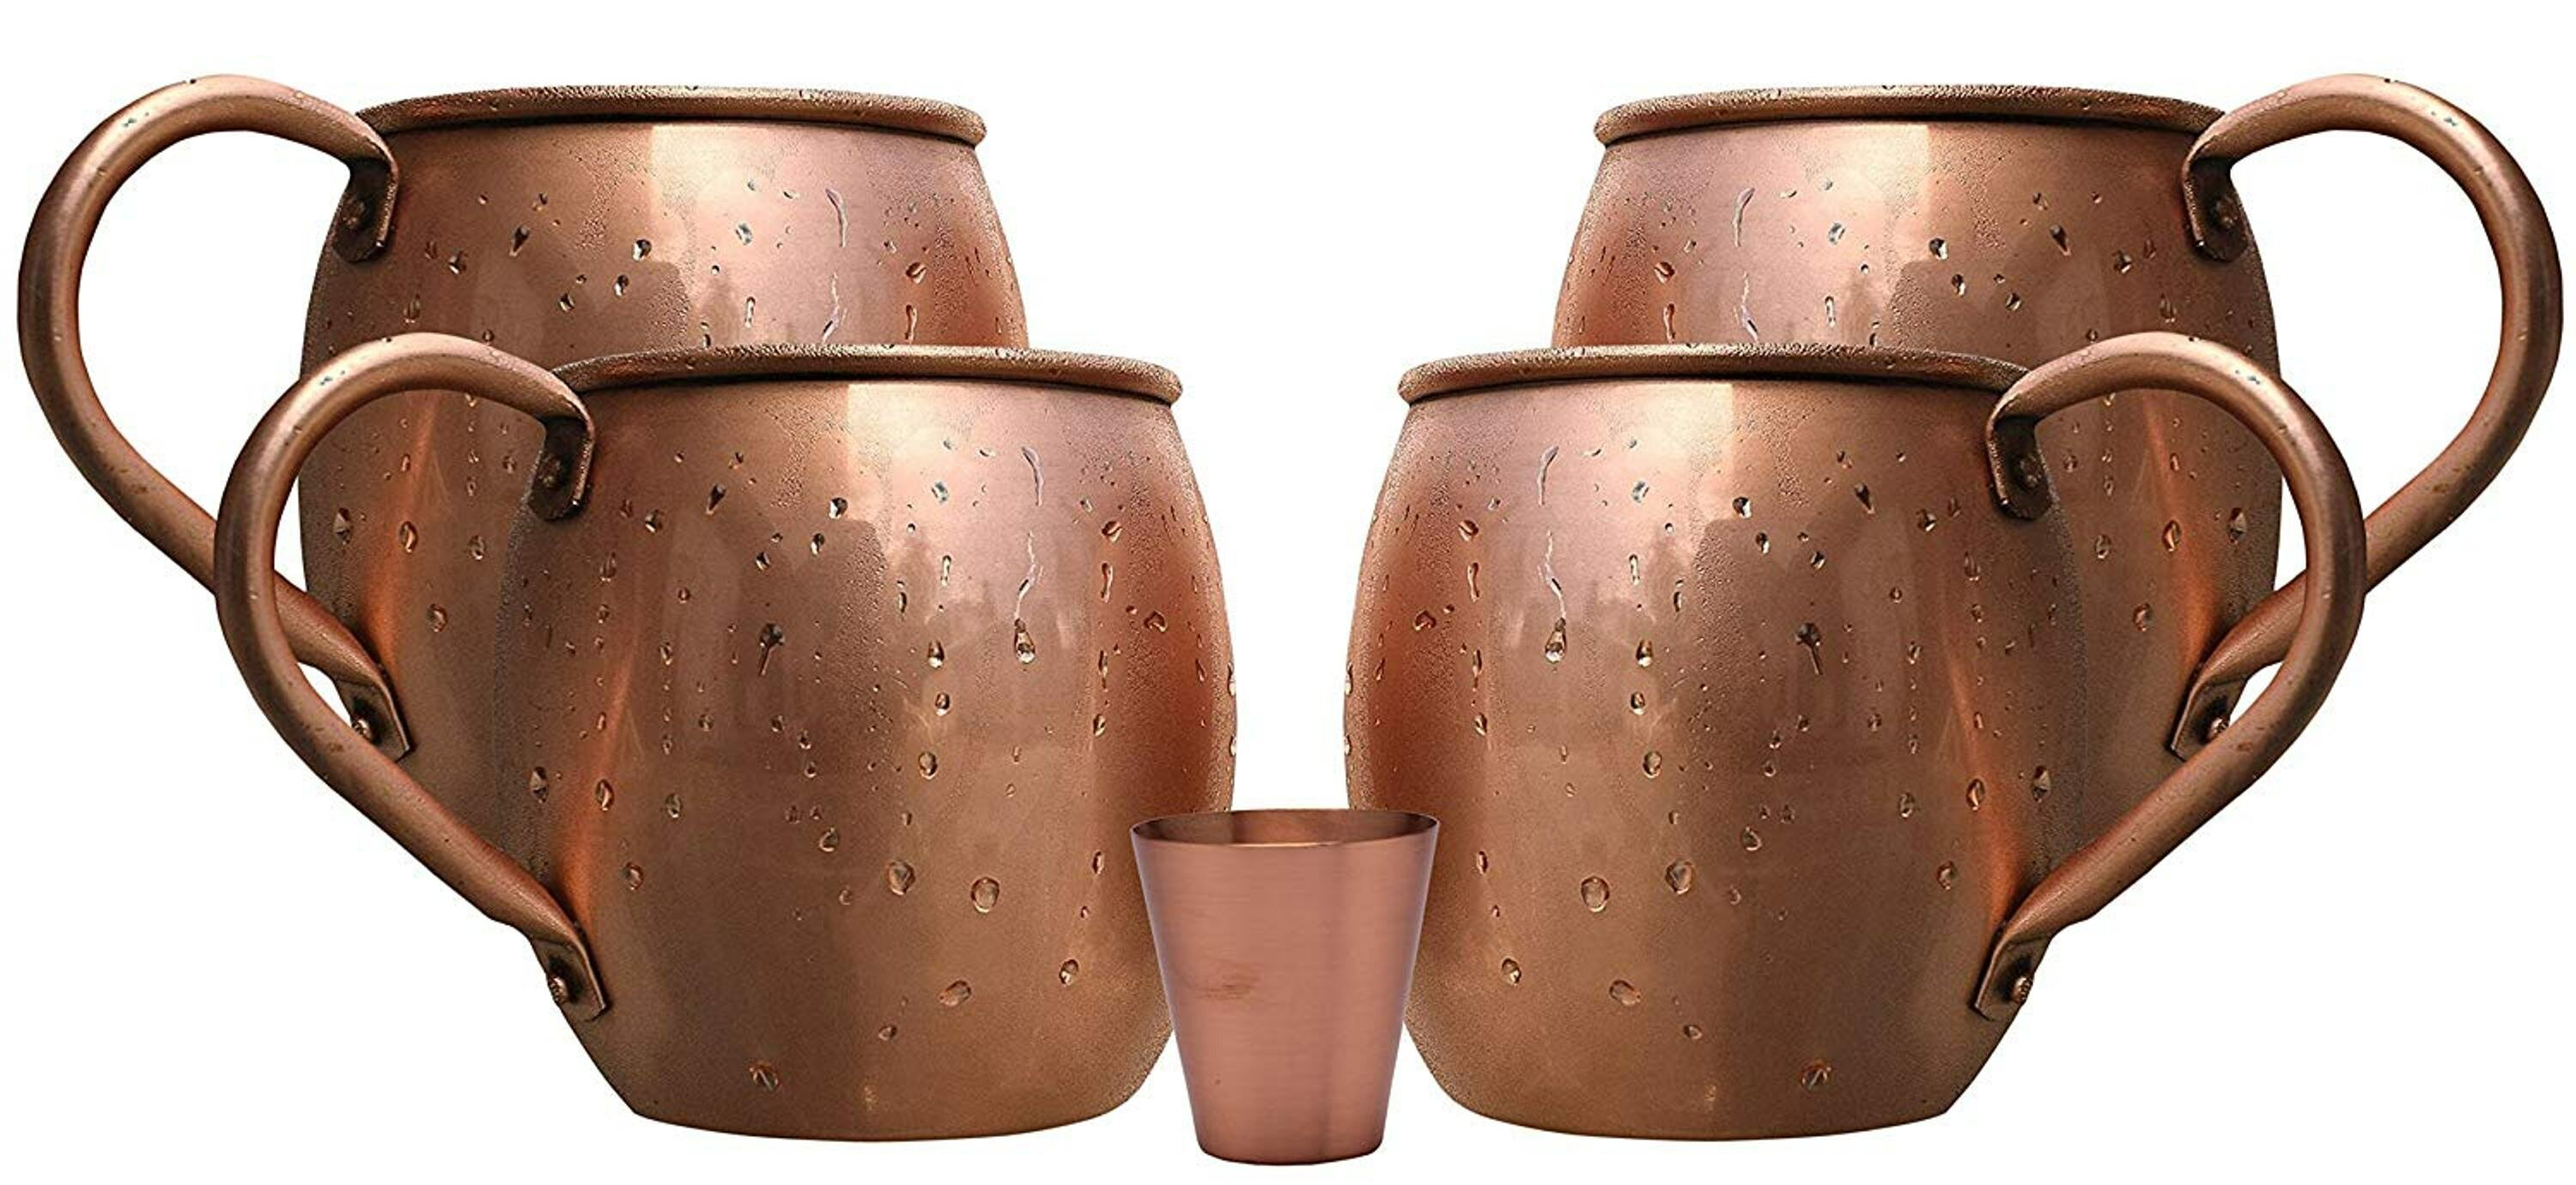 Melange 16 Oz Copper Barrel Mug For Moscow Mules Set Of 24 With Six Shot Glasses Heavy Gauge No Lining Includes Free Recipe Card Wayfair